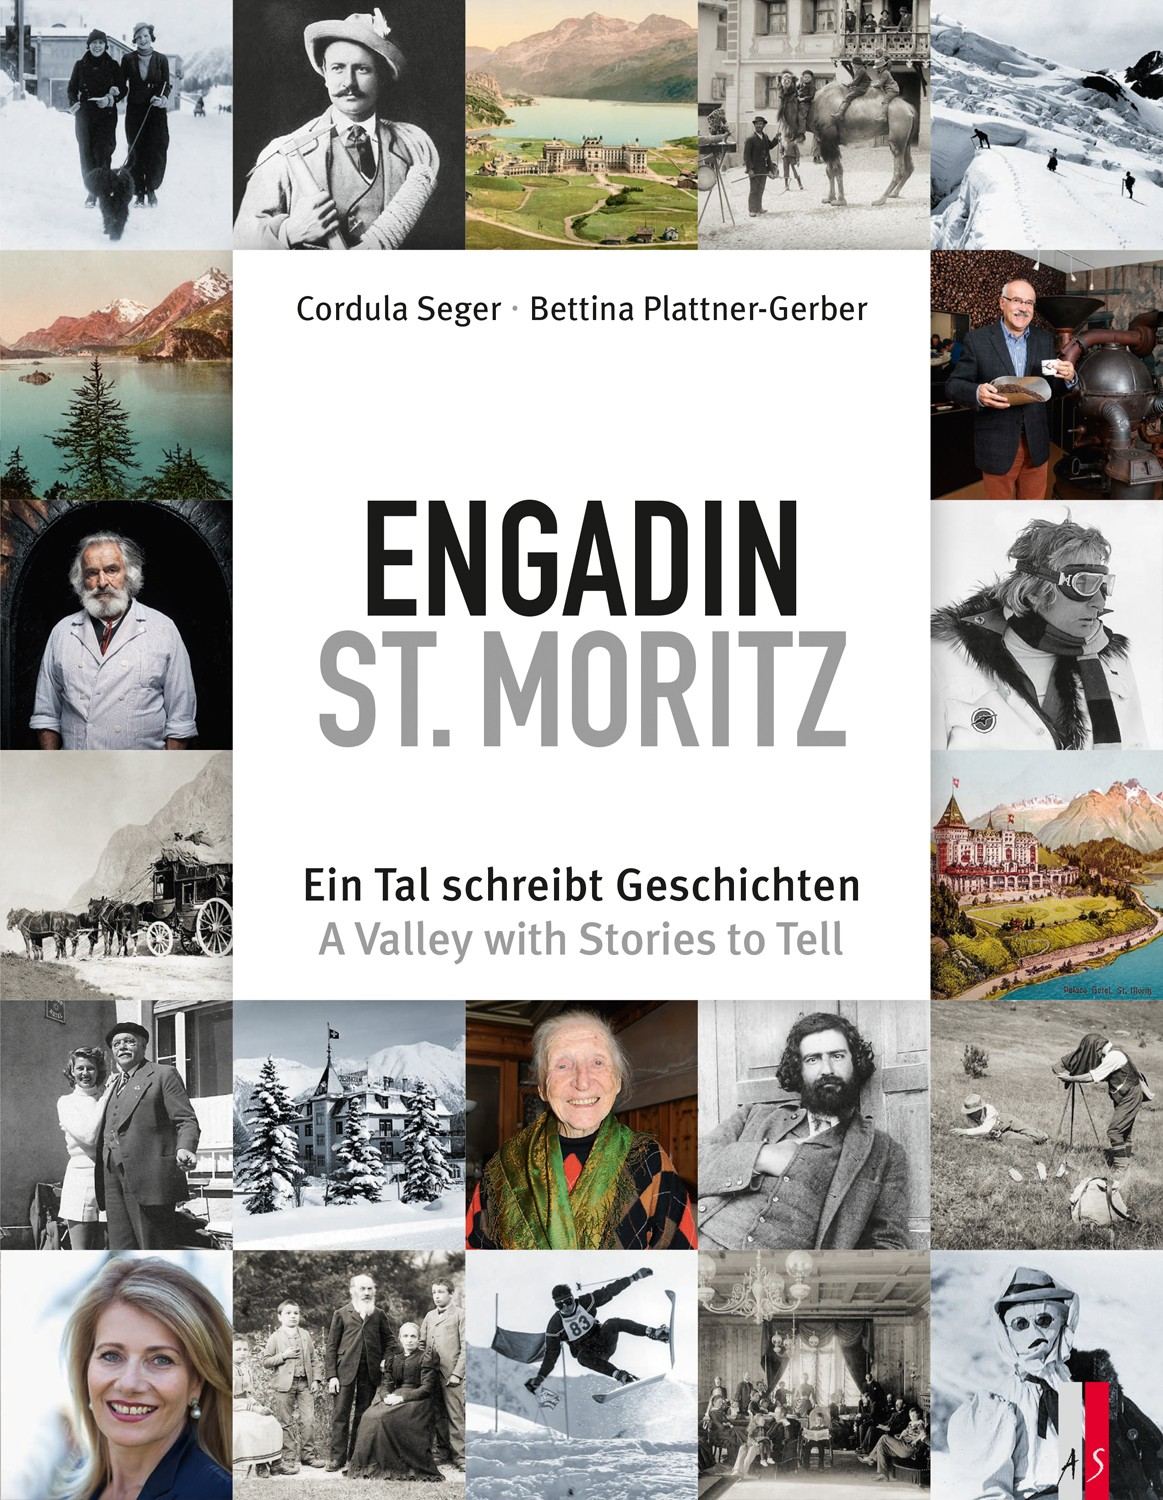 Engadin St. Moritz. A Valley with Stories to Tell